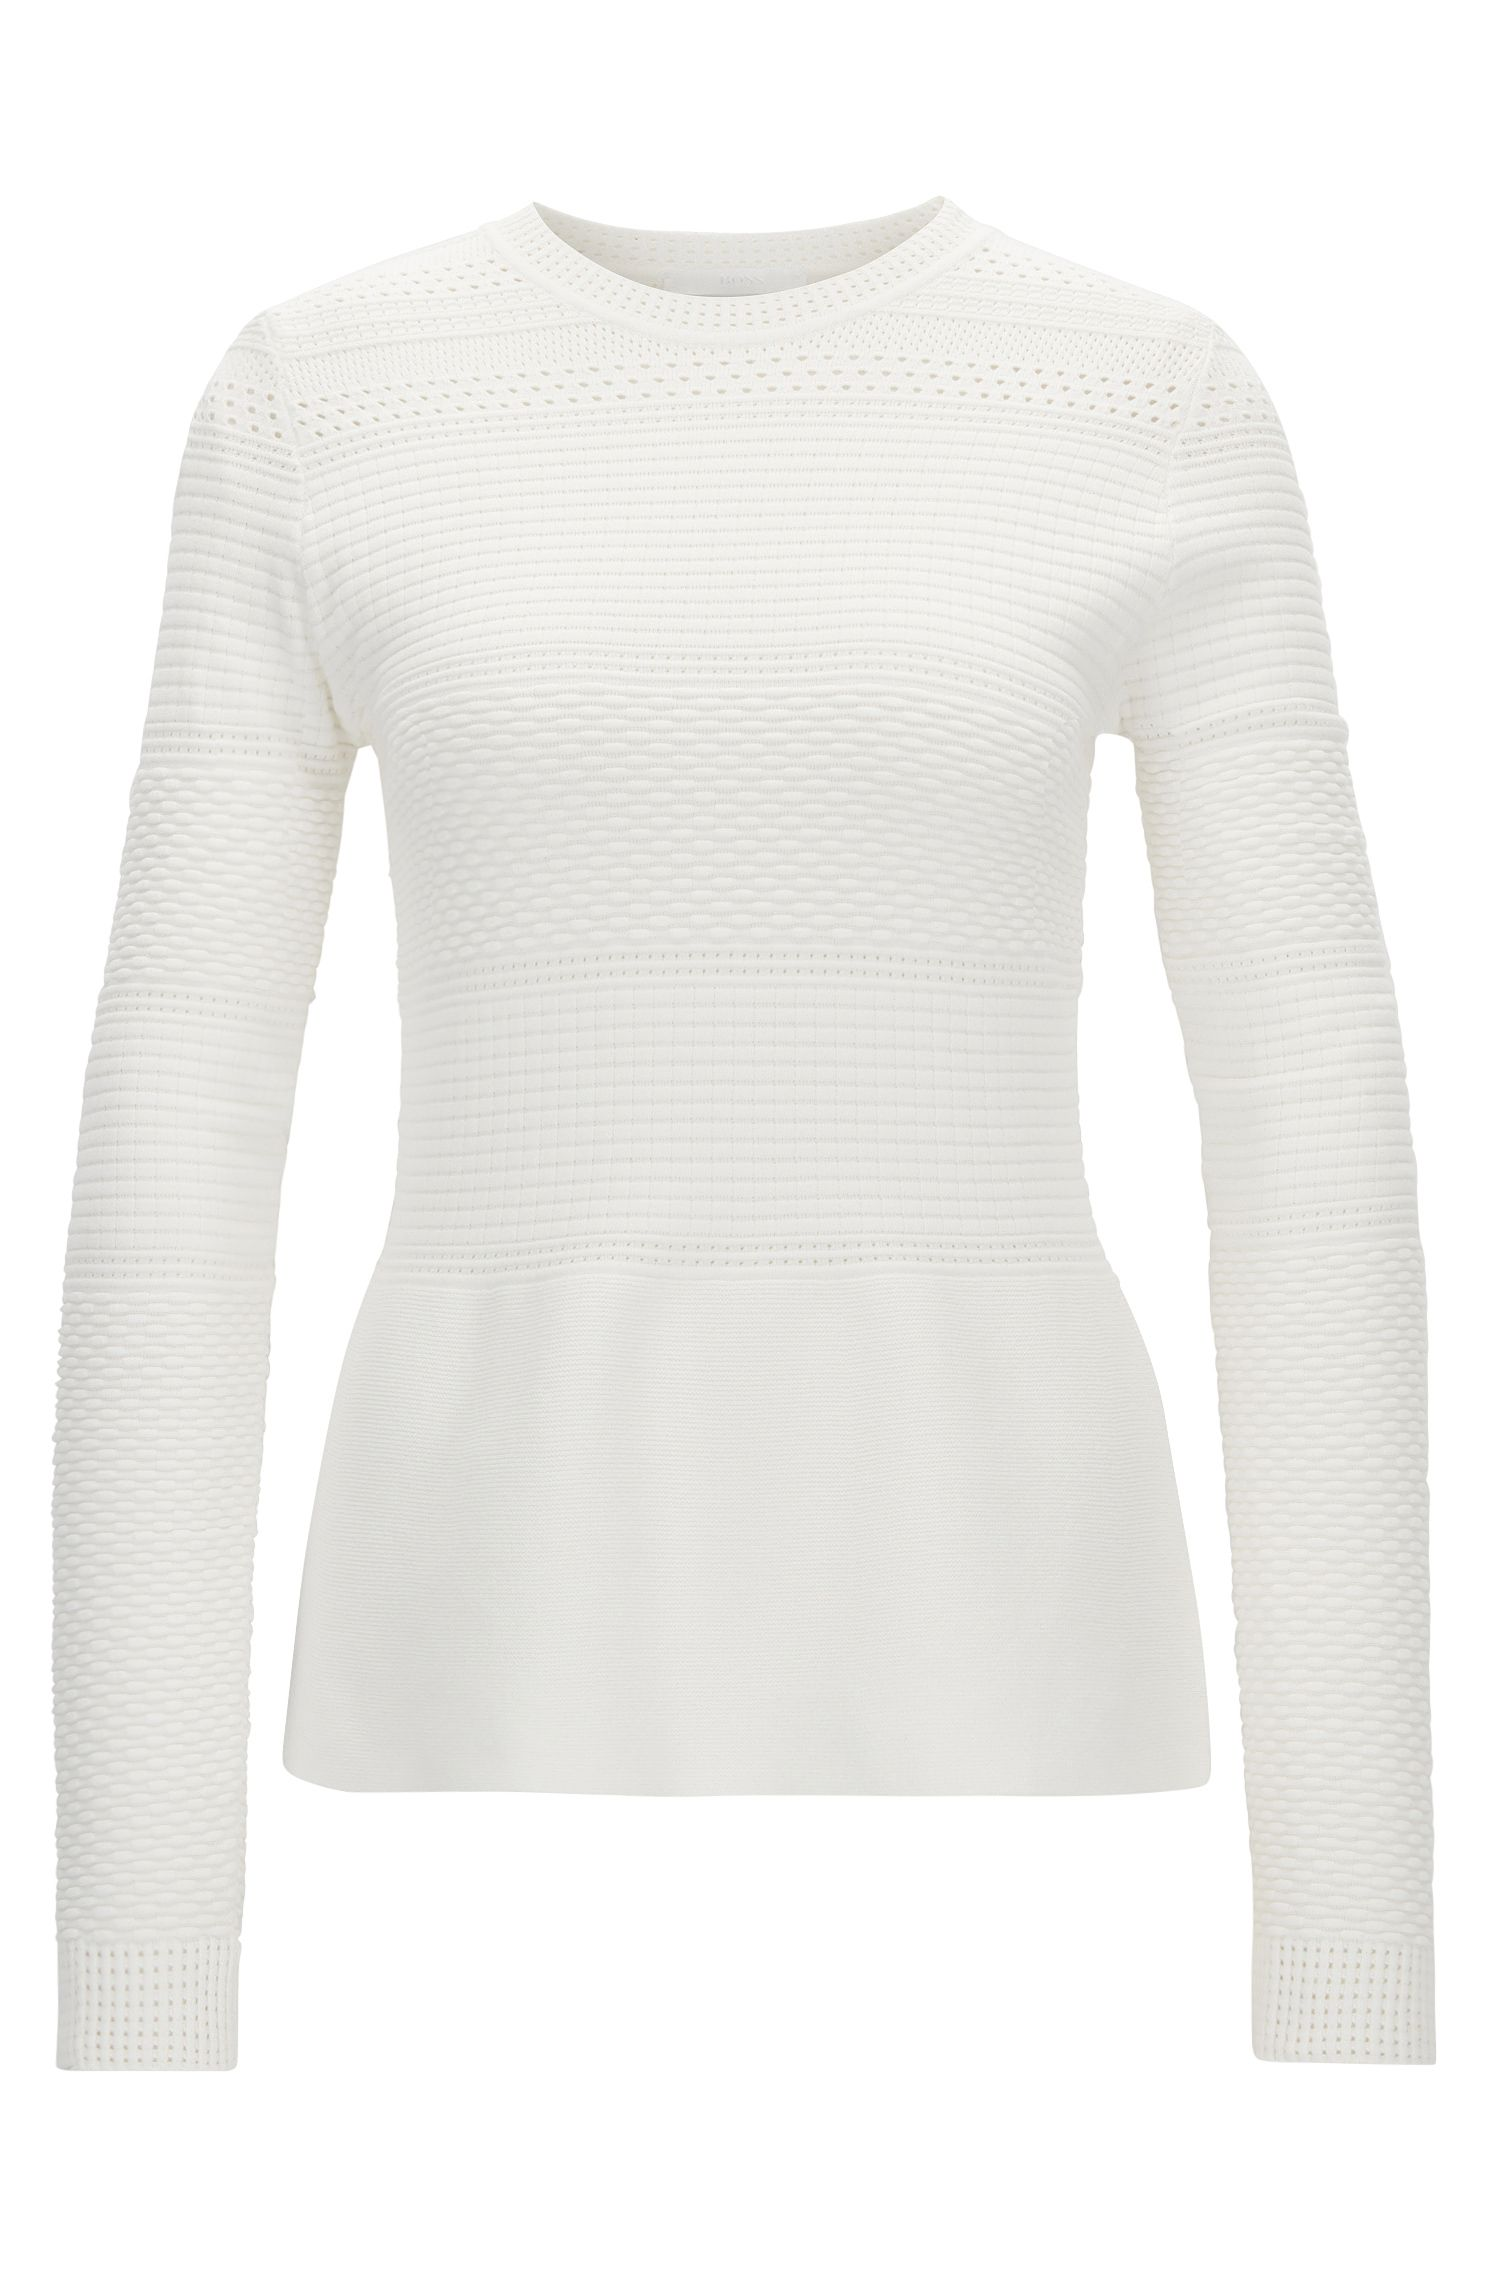 Crew-neck sweater in stretch fabric